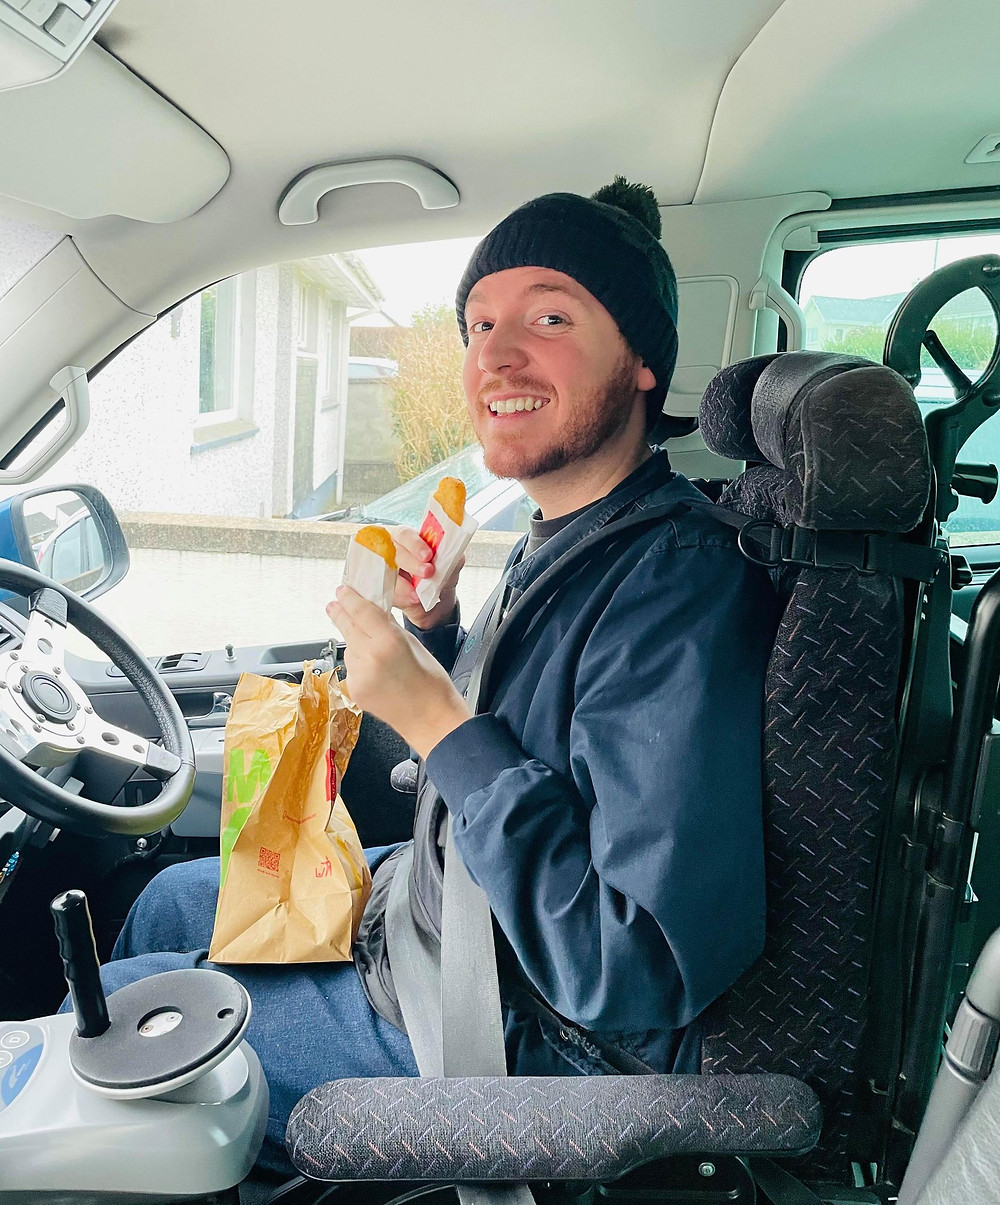 Ross sat in his car in the driving position, holding two hashbrowns and a mcdonalds bag